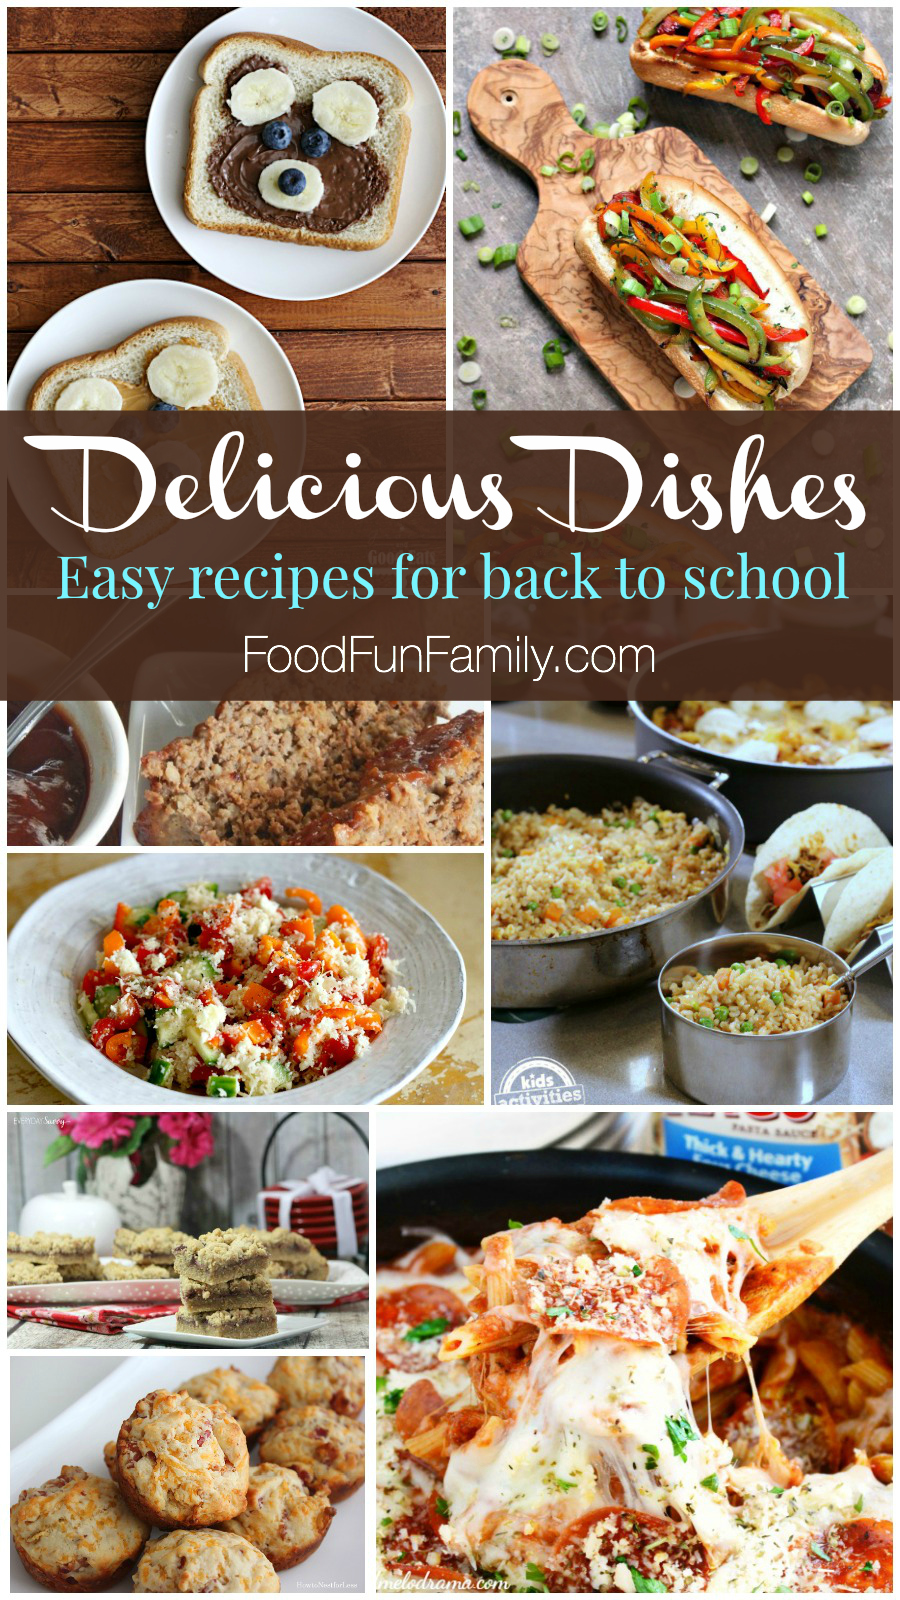 Delicious Dishes Recipes Party - with a collection of easy recipes for back to school season that the whole family will enjoy